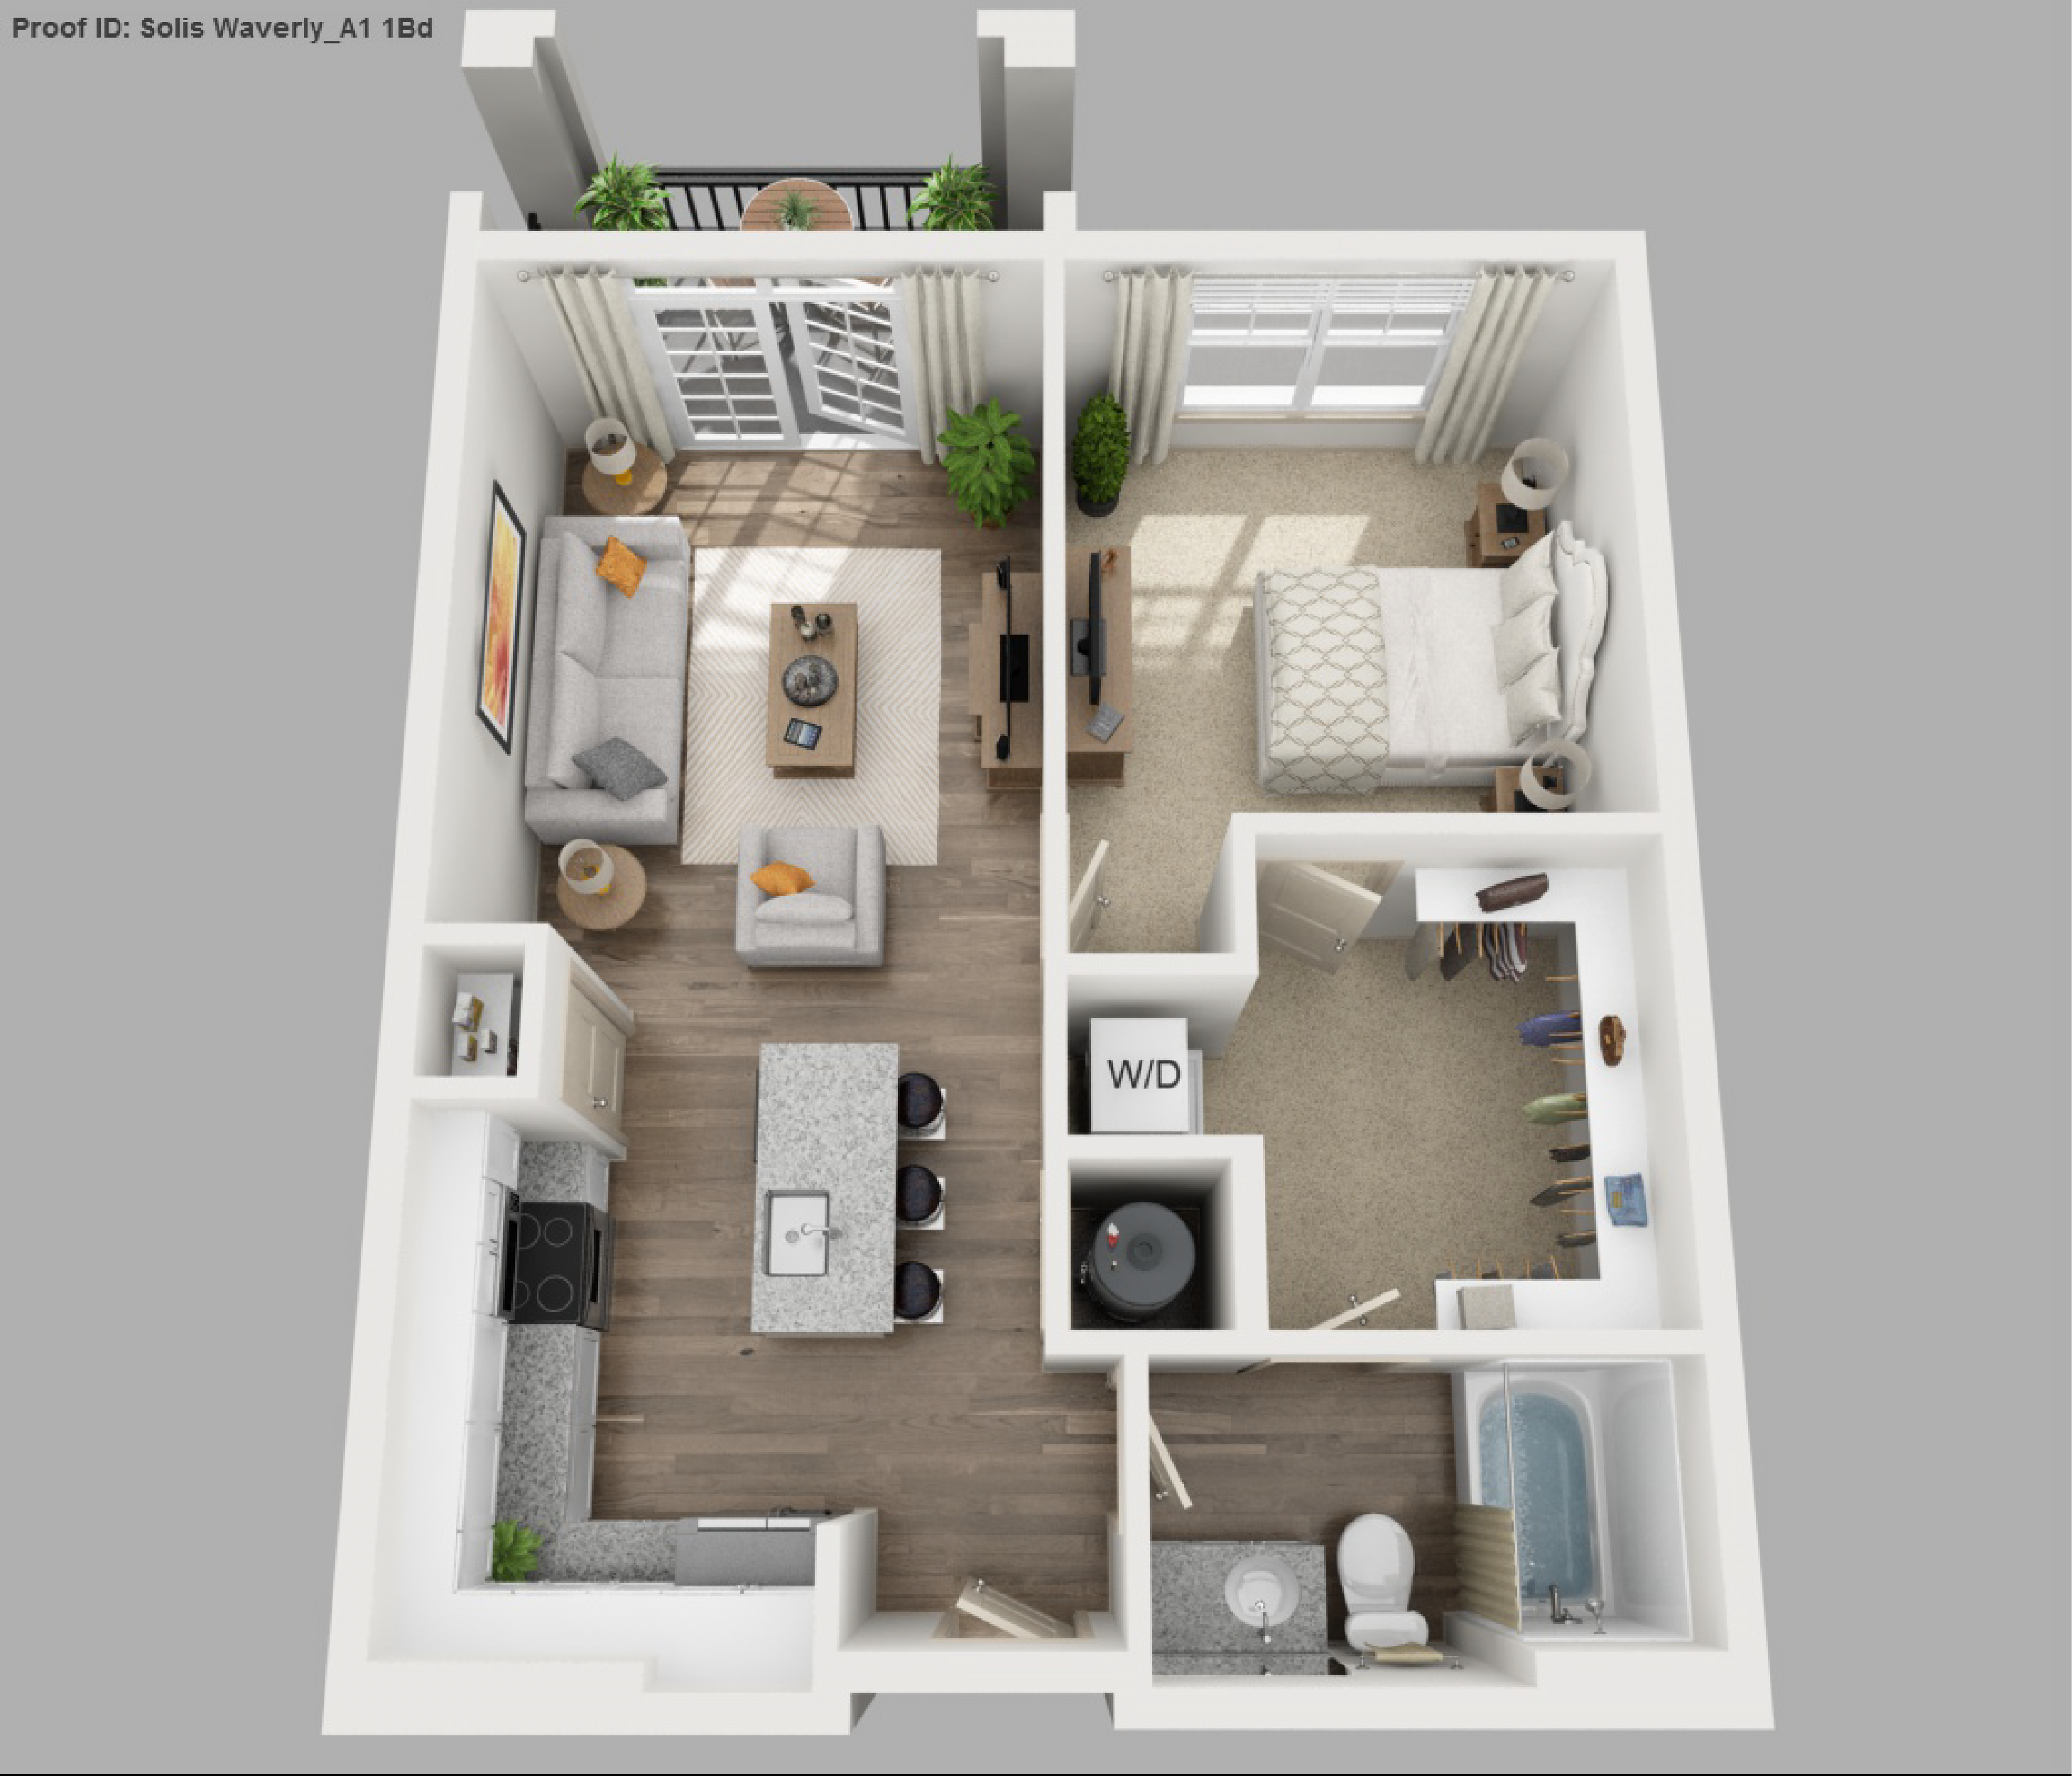 Solis apartments floorplans waverly for 1 bedroom apartment layout